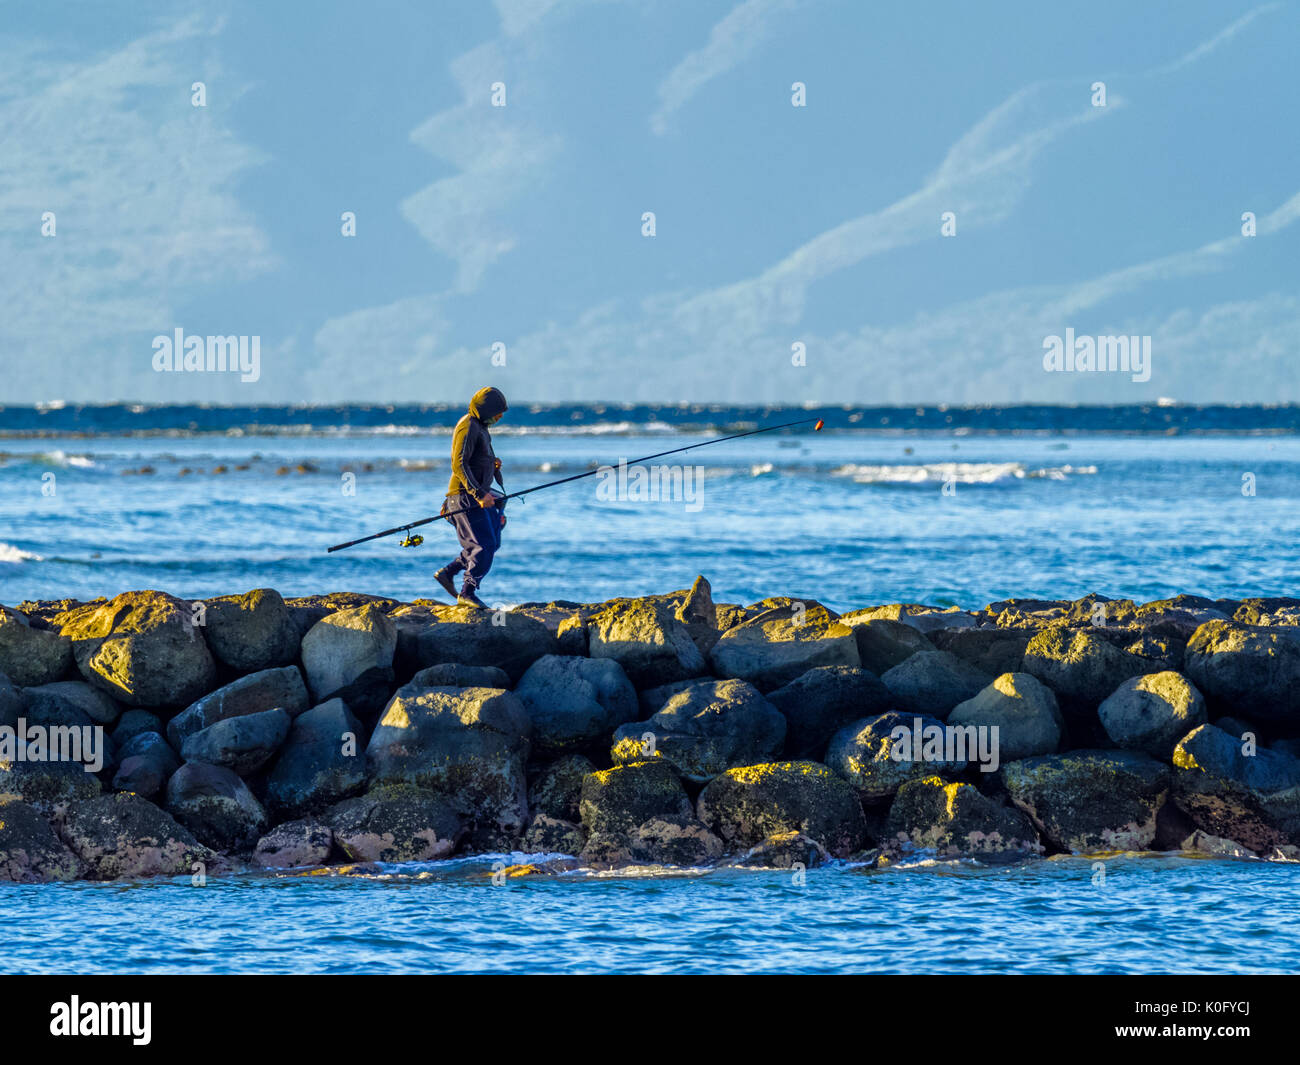 Fishing hawaii tourist stock photos fishing hawaii for Fishing in maui